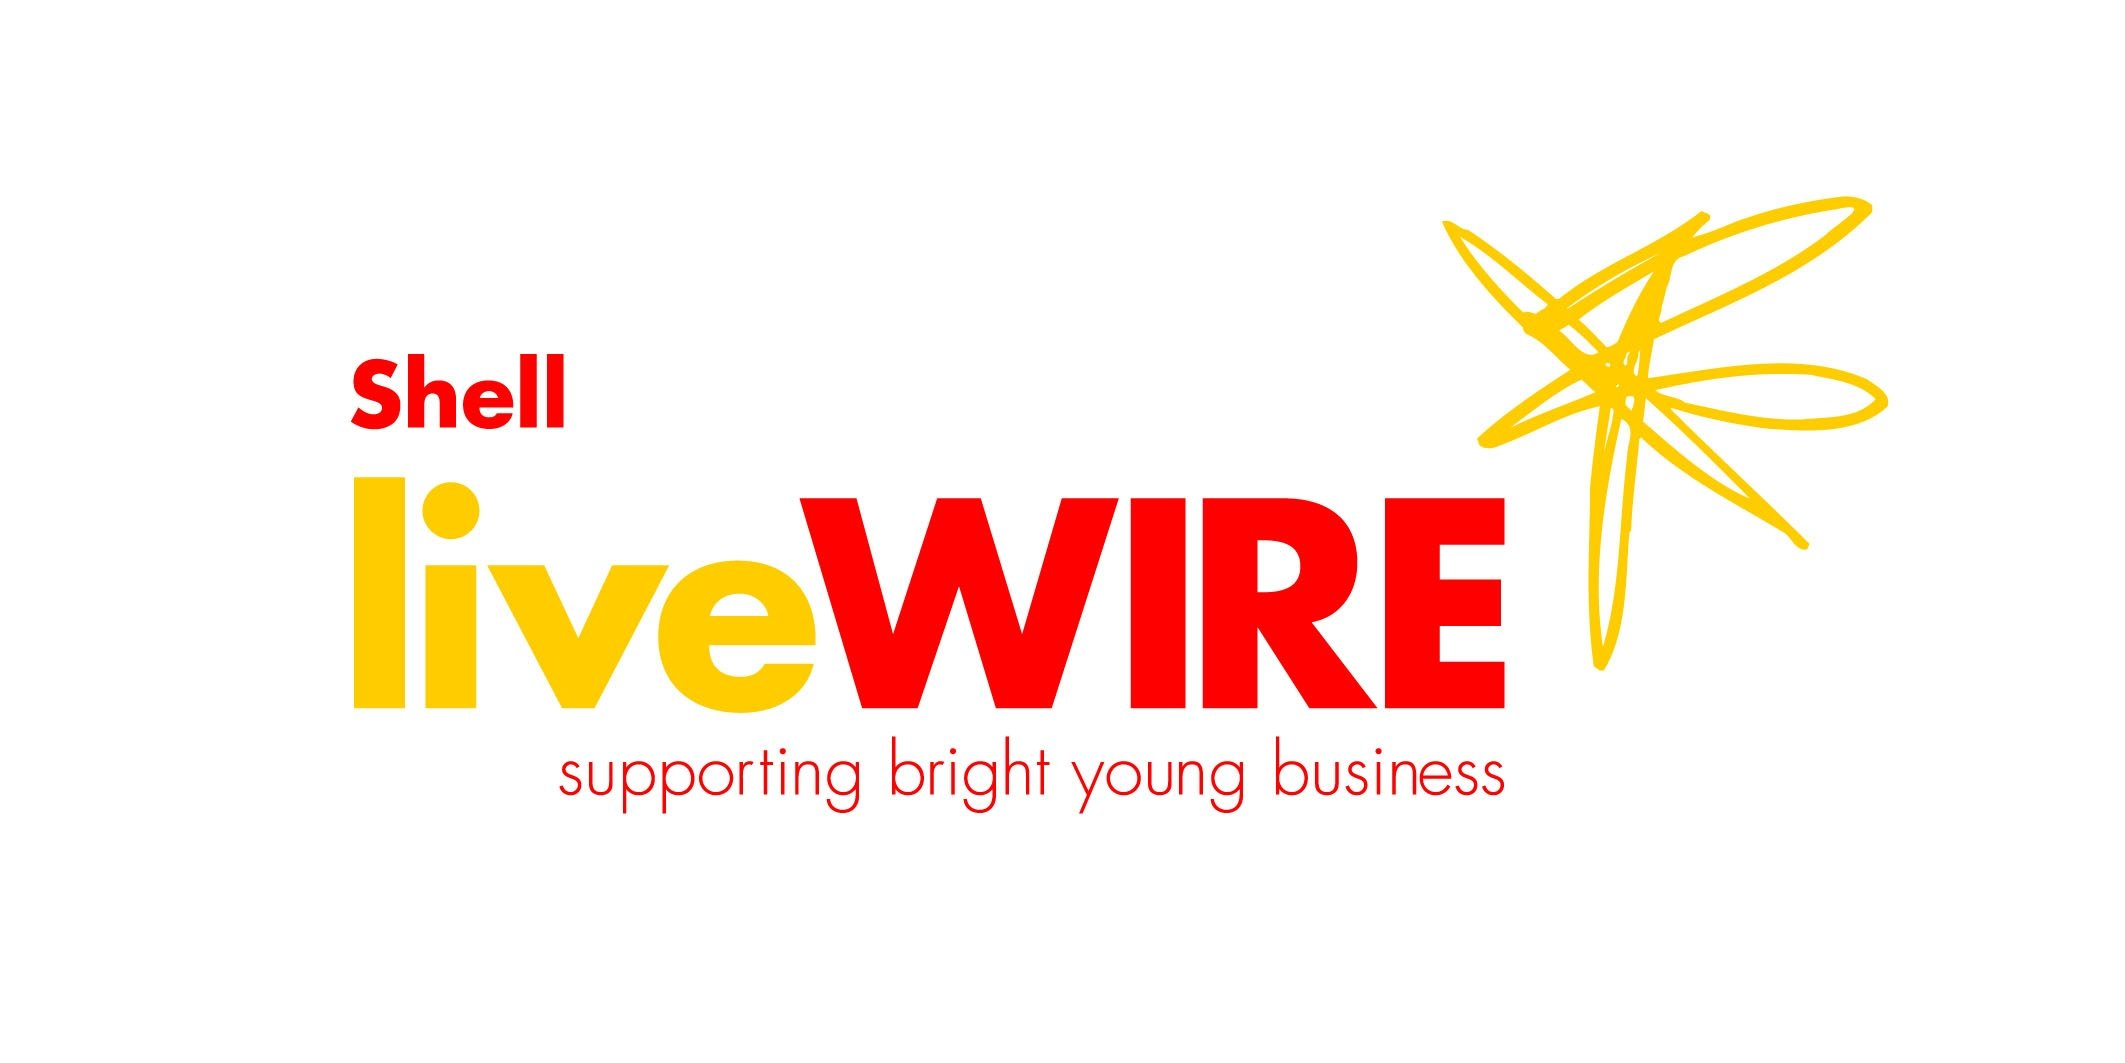 Shell Joint Venture LiveWIRE Programme